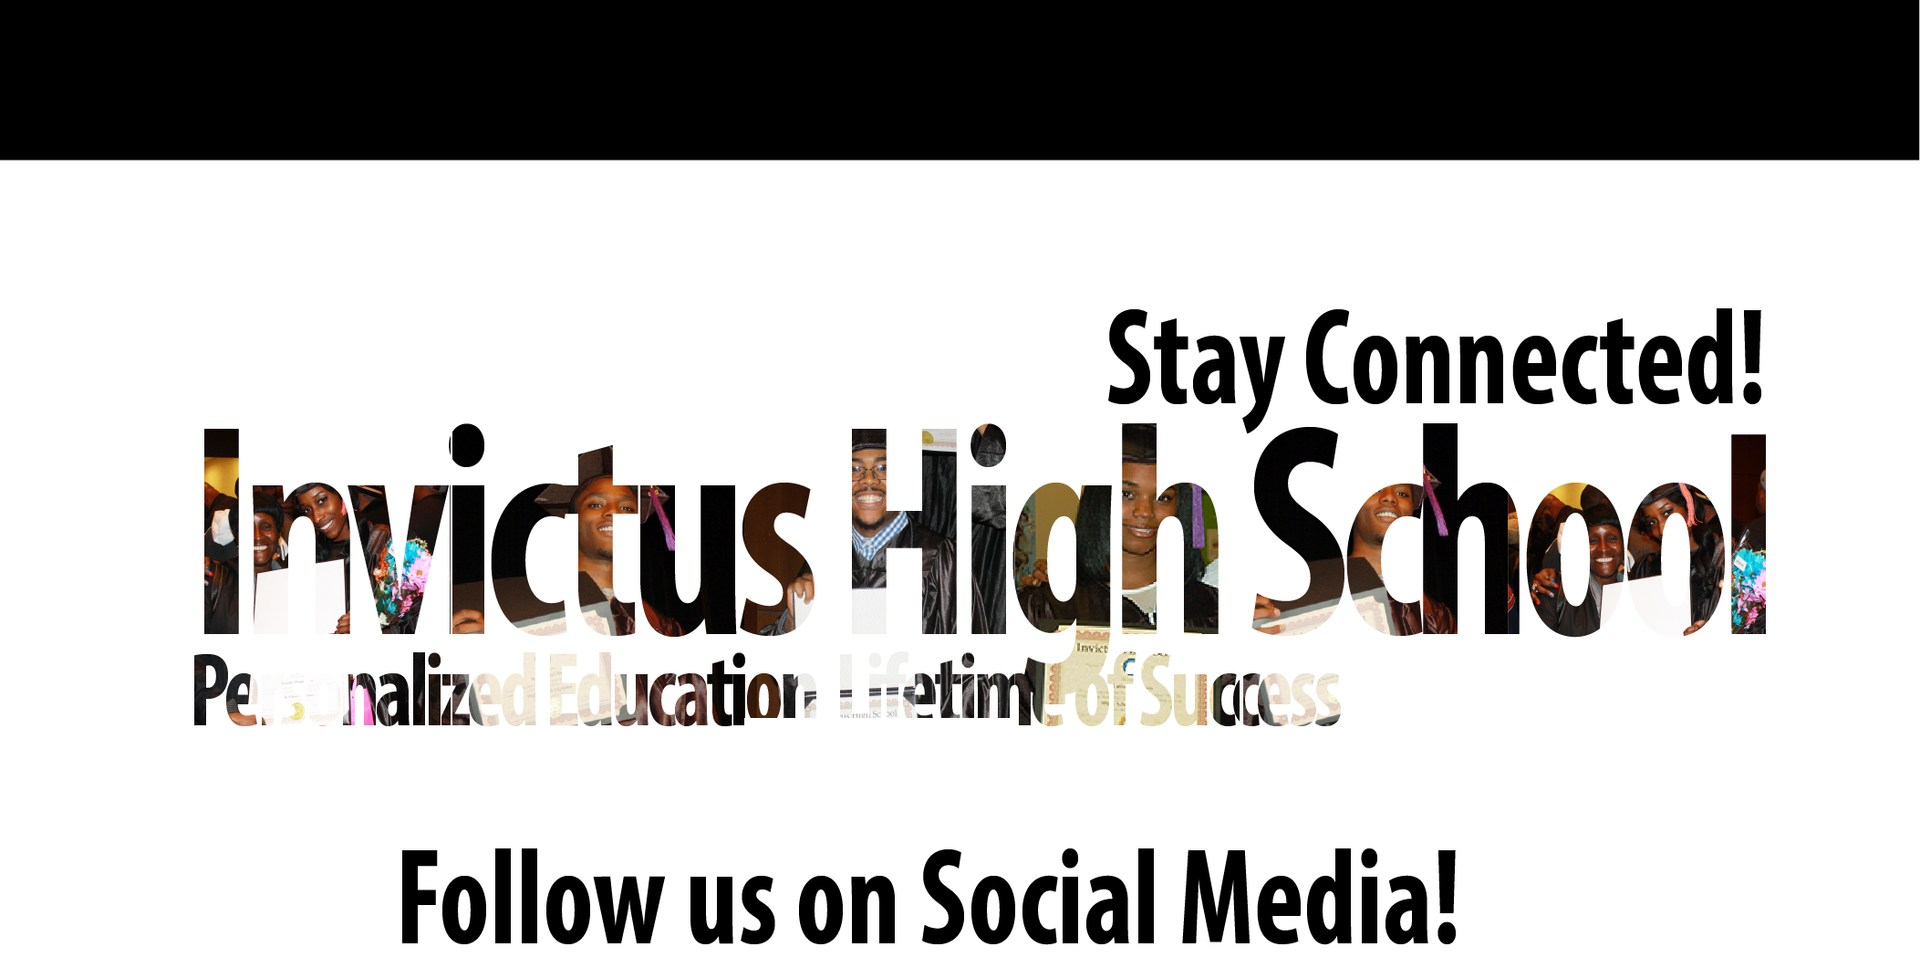 Stay connected with Invictus High School